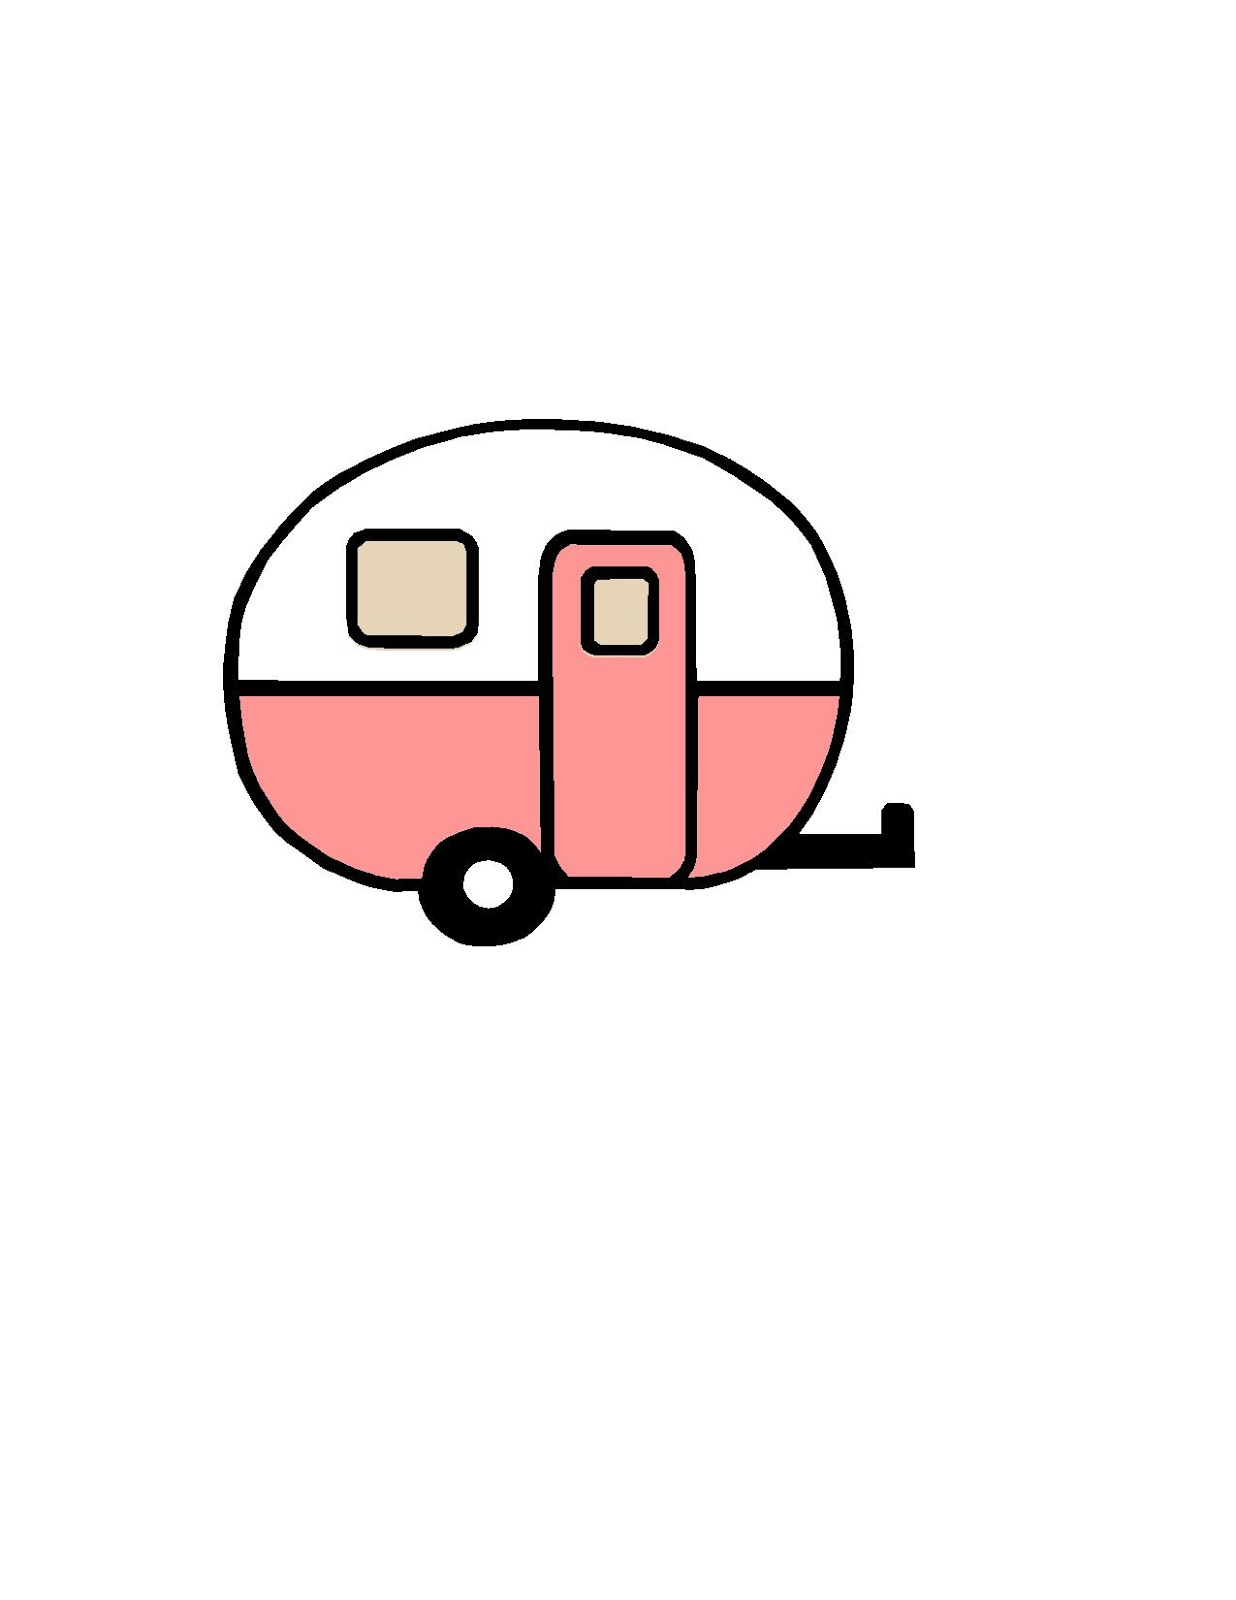 1236x1600 Closet Crafter Free Vintage Camper Silhouette Design File